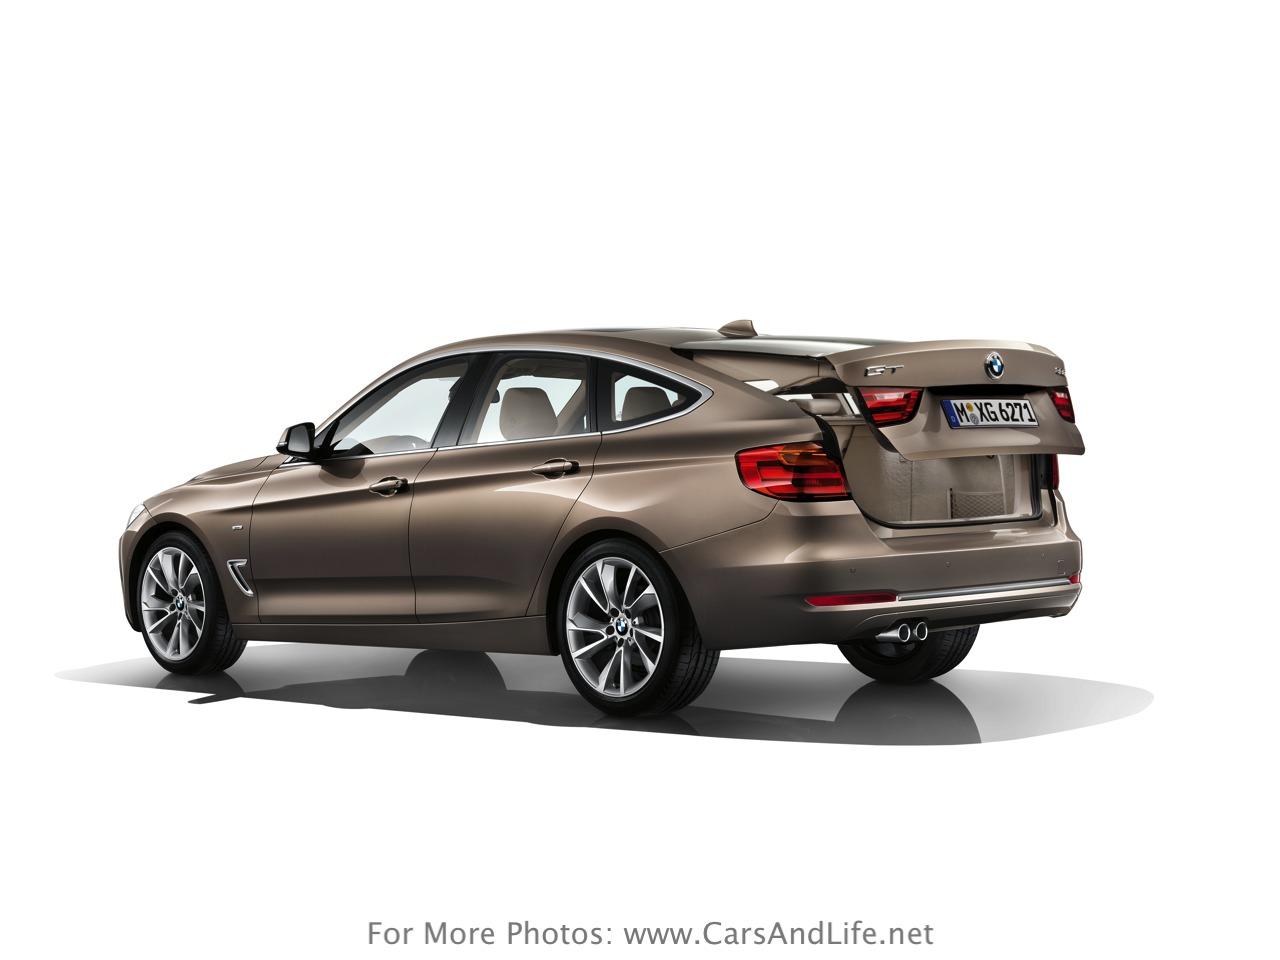 new bmw 3 series gran turismo or 3 gt photos series 2 cars life. Cars Review. Best American Auto & Cars Review